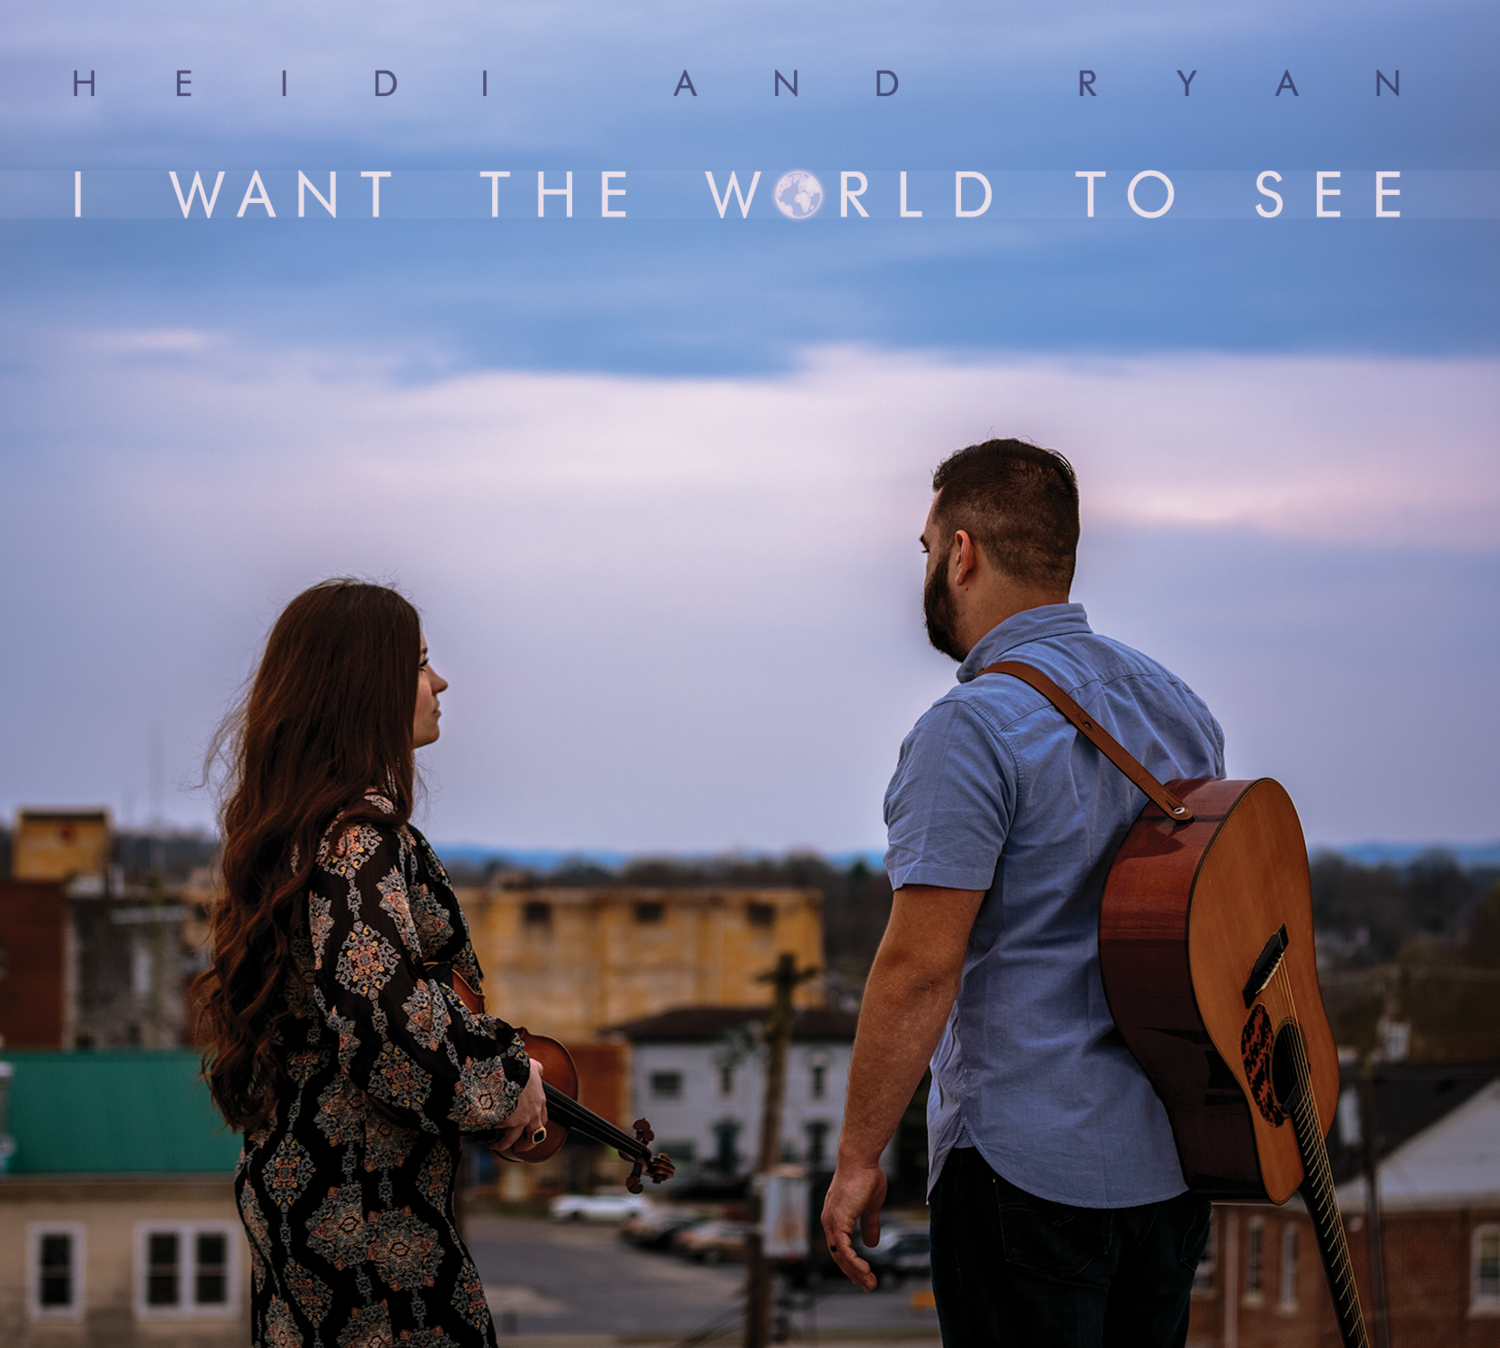 I Want The World To See - Heidi & Ryan